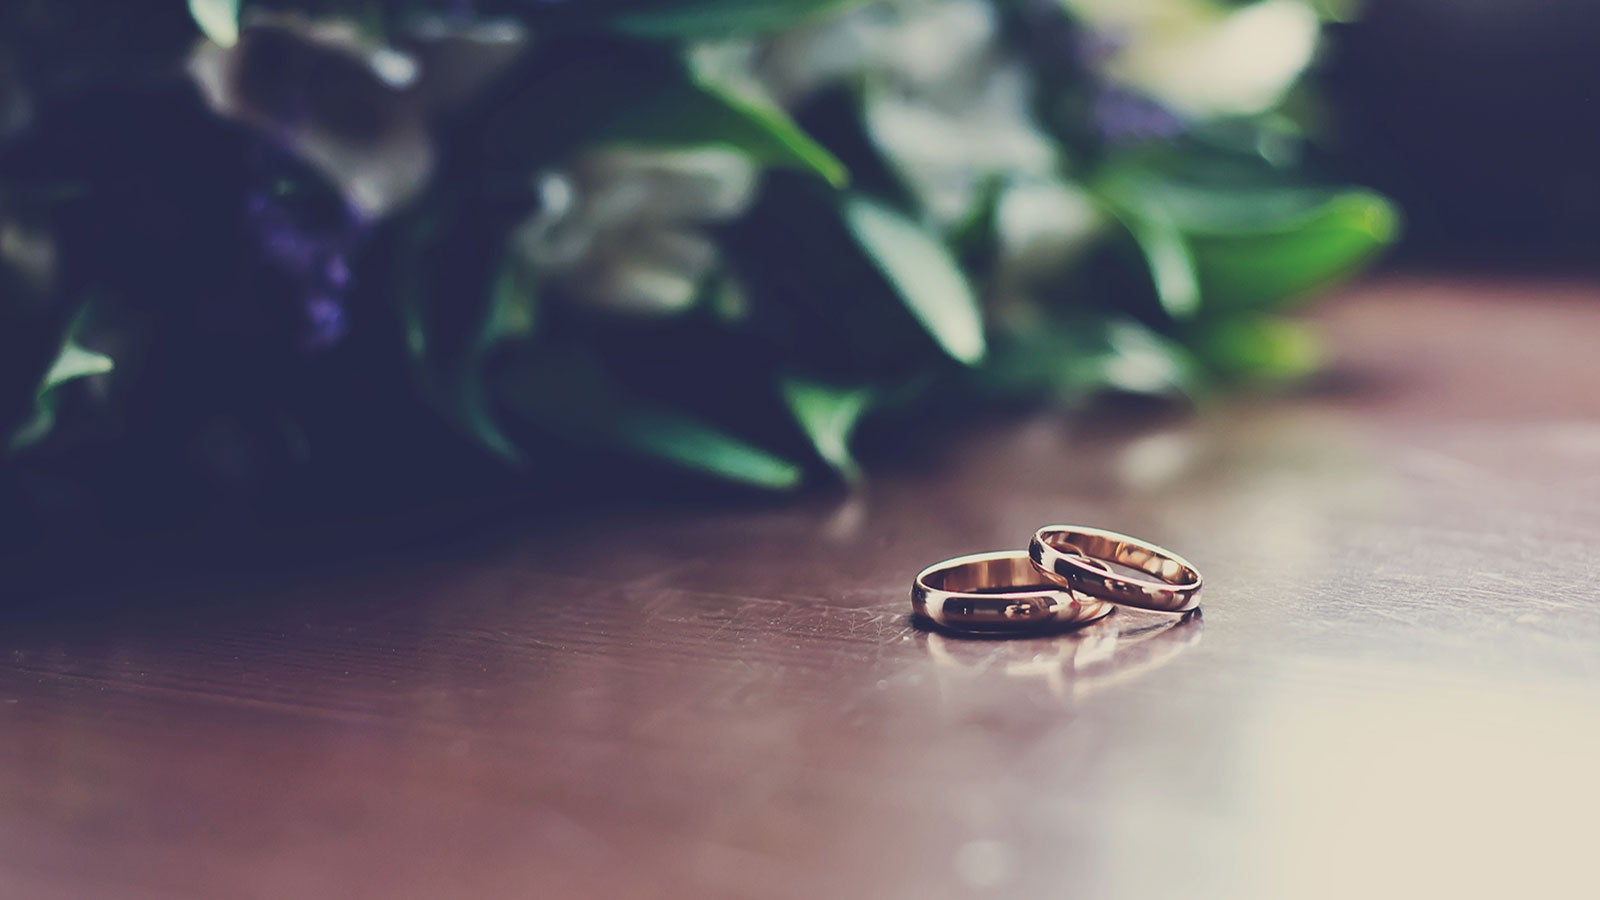 Two gold wedding bands rest on a wooden table in front of a bouquet.